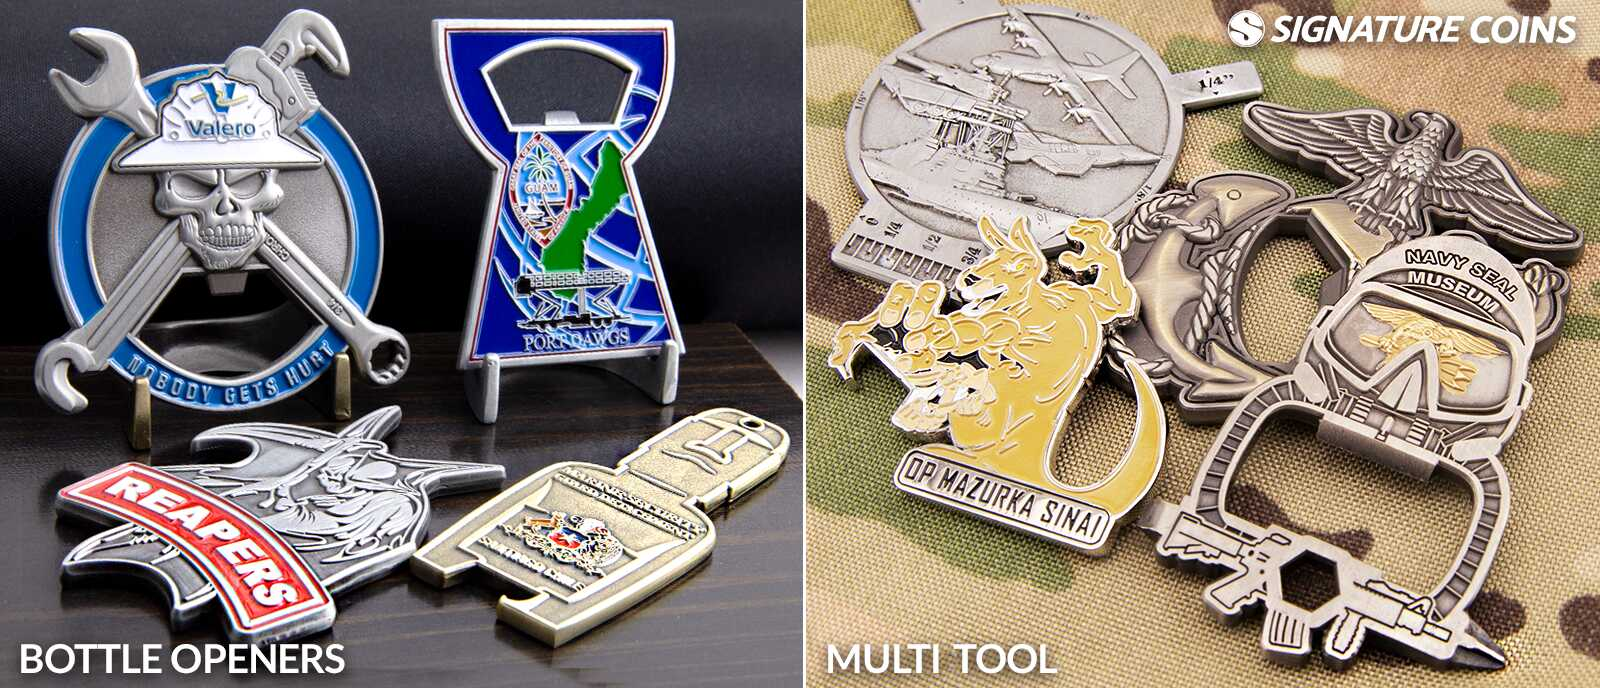 signaturecoins-customshape-Bottle-Openers-Multitool-challenge-coins4